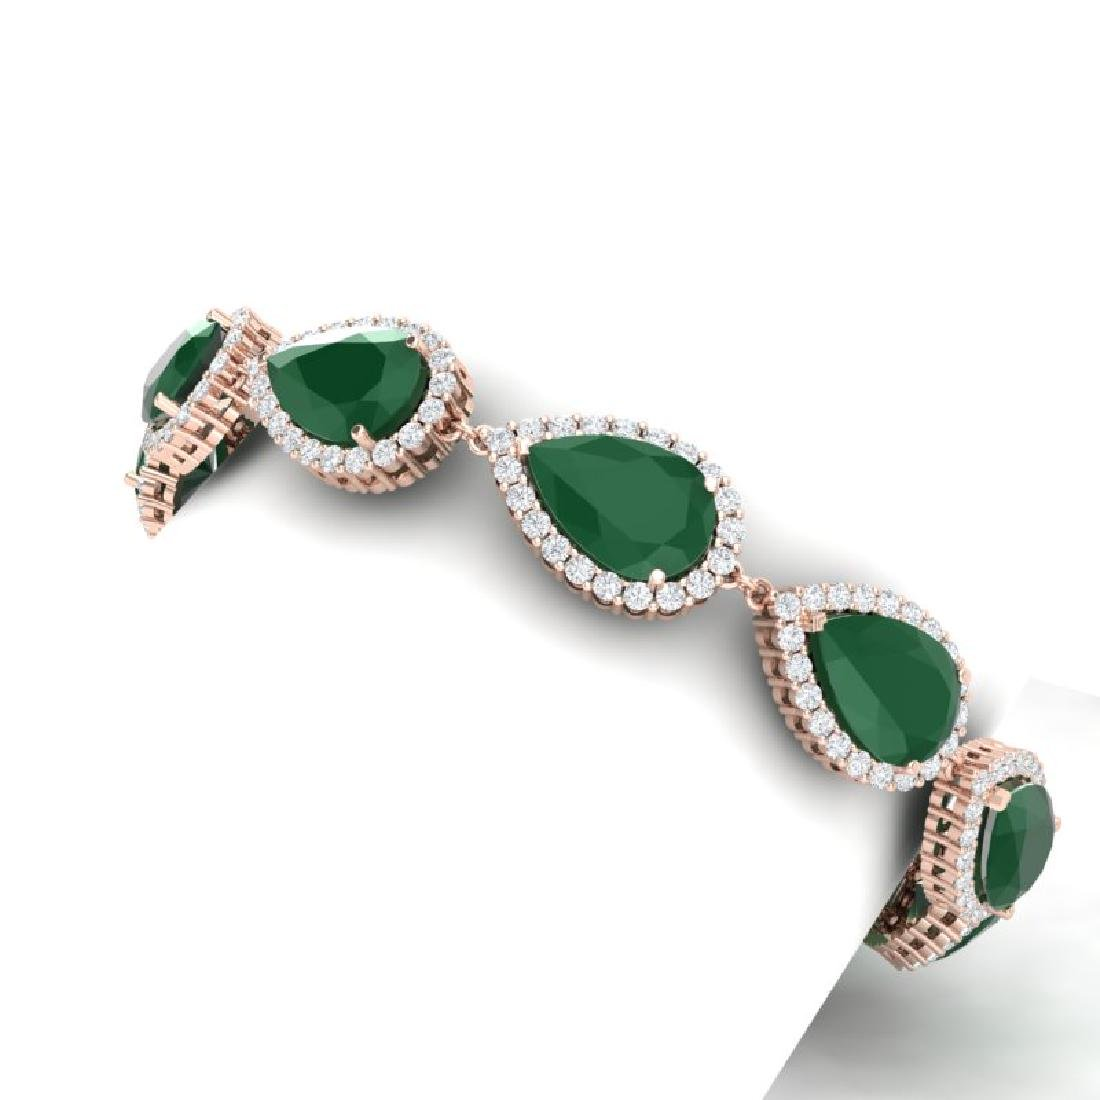 42 CTW Royalty Emerald & VS Diamond Bracelet 18K Rose - 2